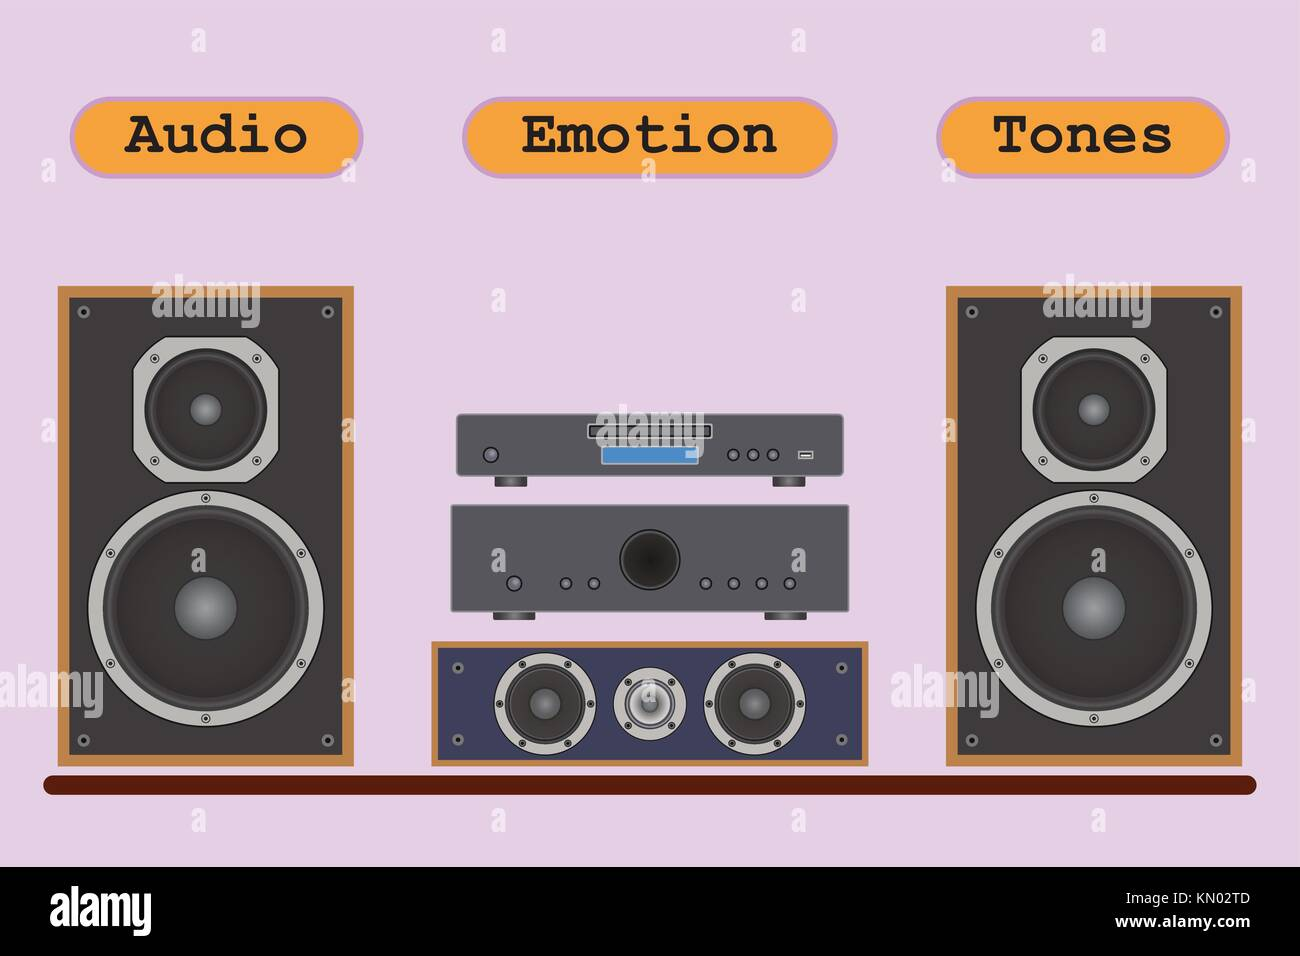 illustrations of audio equipment components. Home theater: speaker